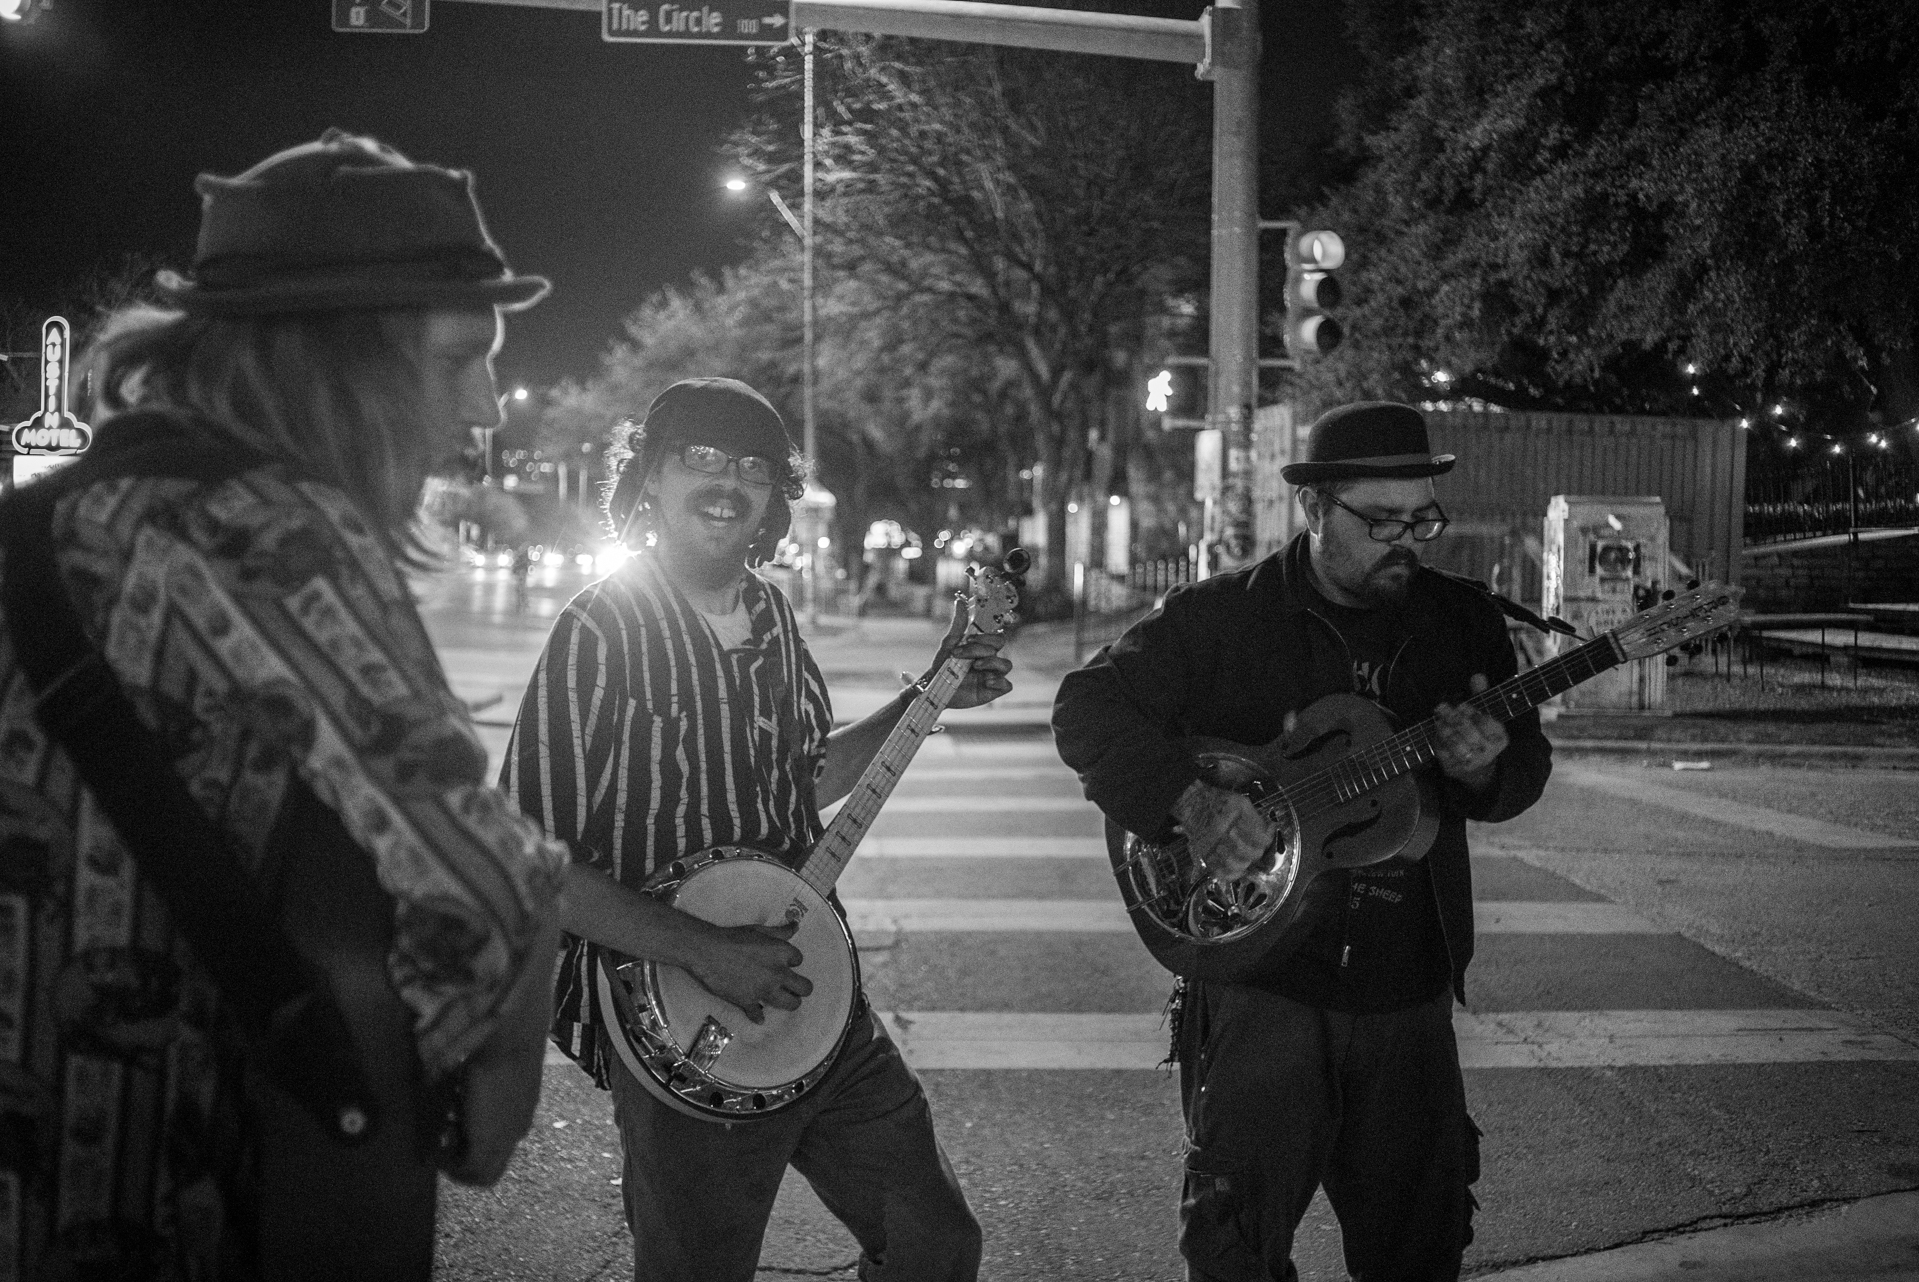 Street Musicians from Austin Texas - Photo: Stephan Wetaas